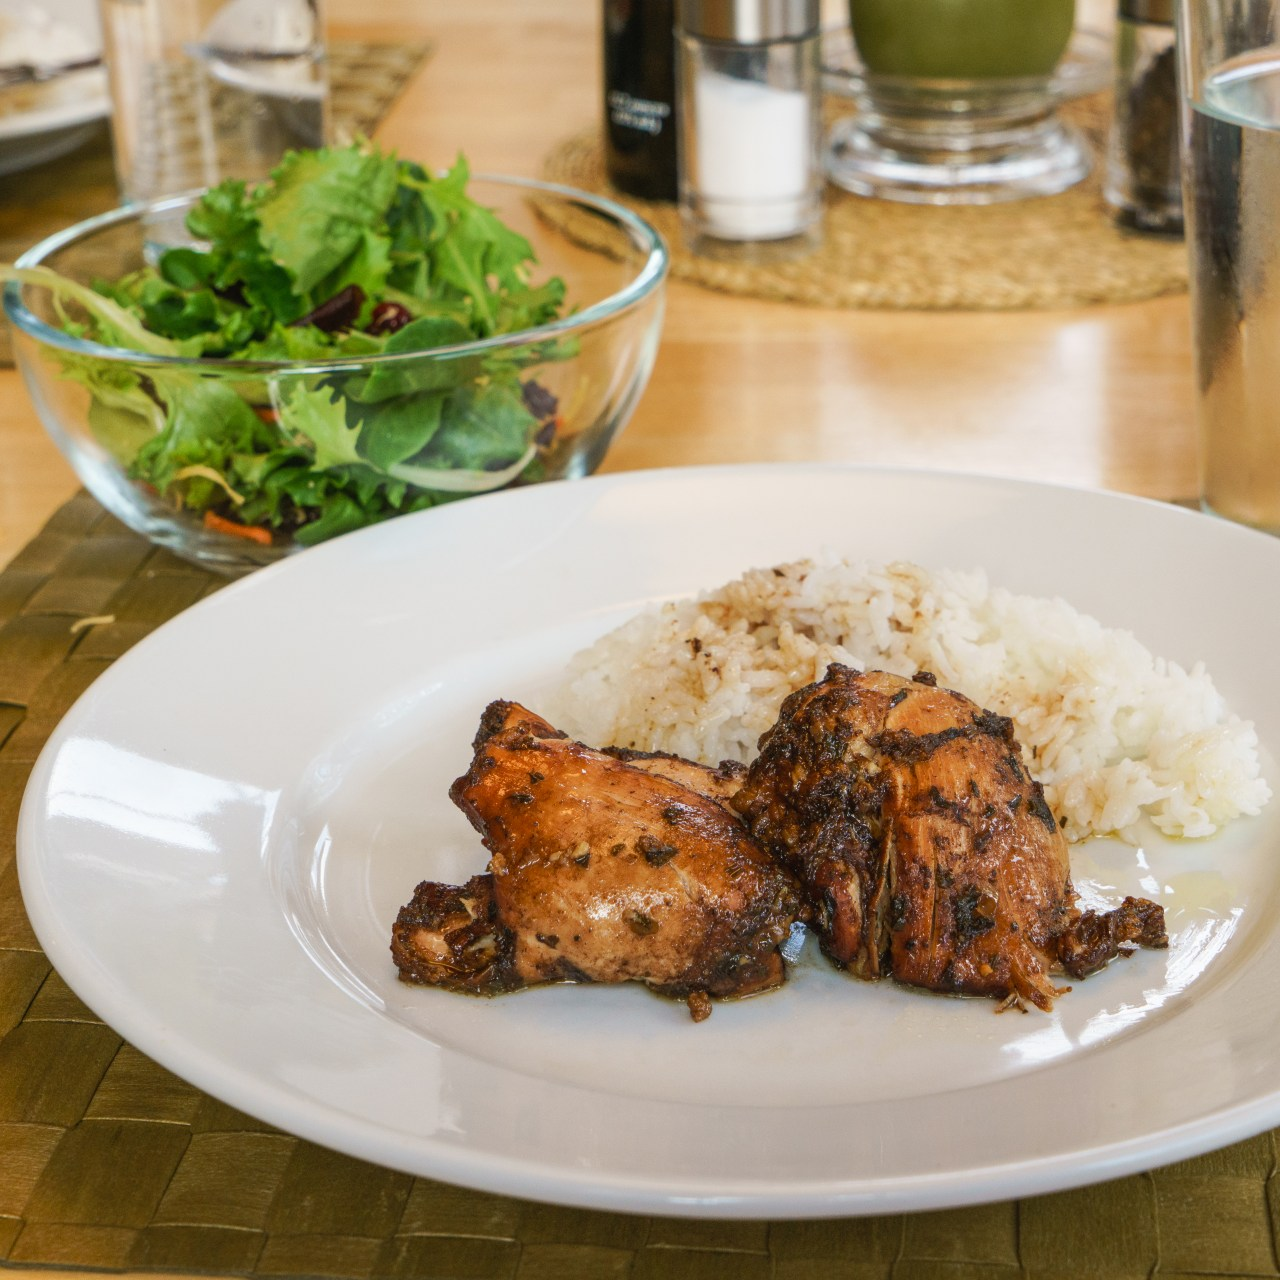 Dinner is served: Balsamic Chicken Thighs with rice and a salad